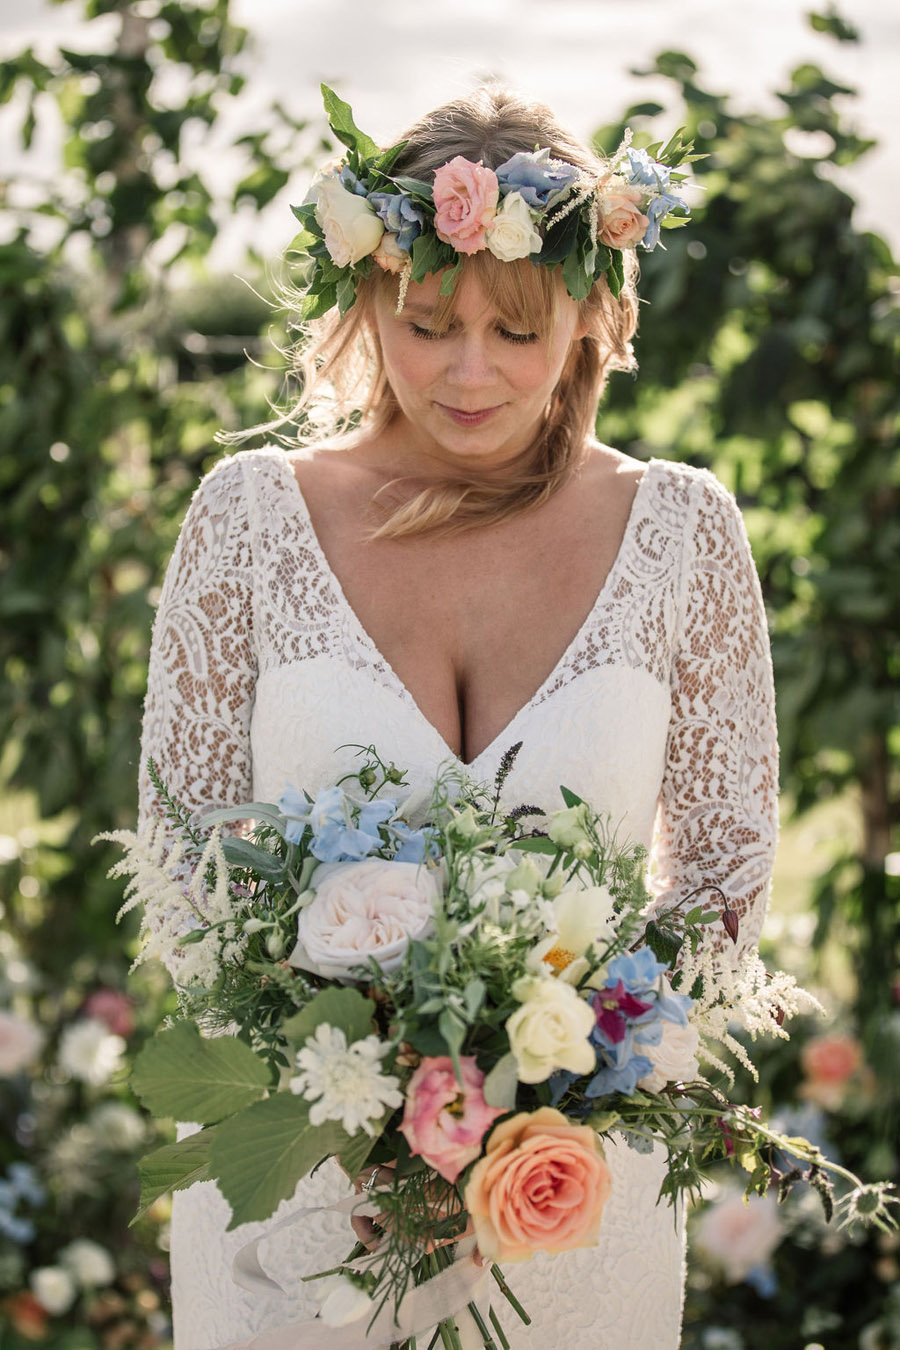 Evening sunset wedding inspiration at Willow Grange Farm, with Becky Harley Photography (26)